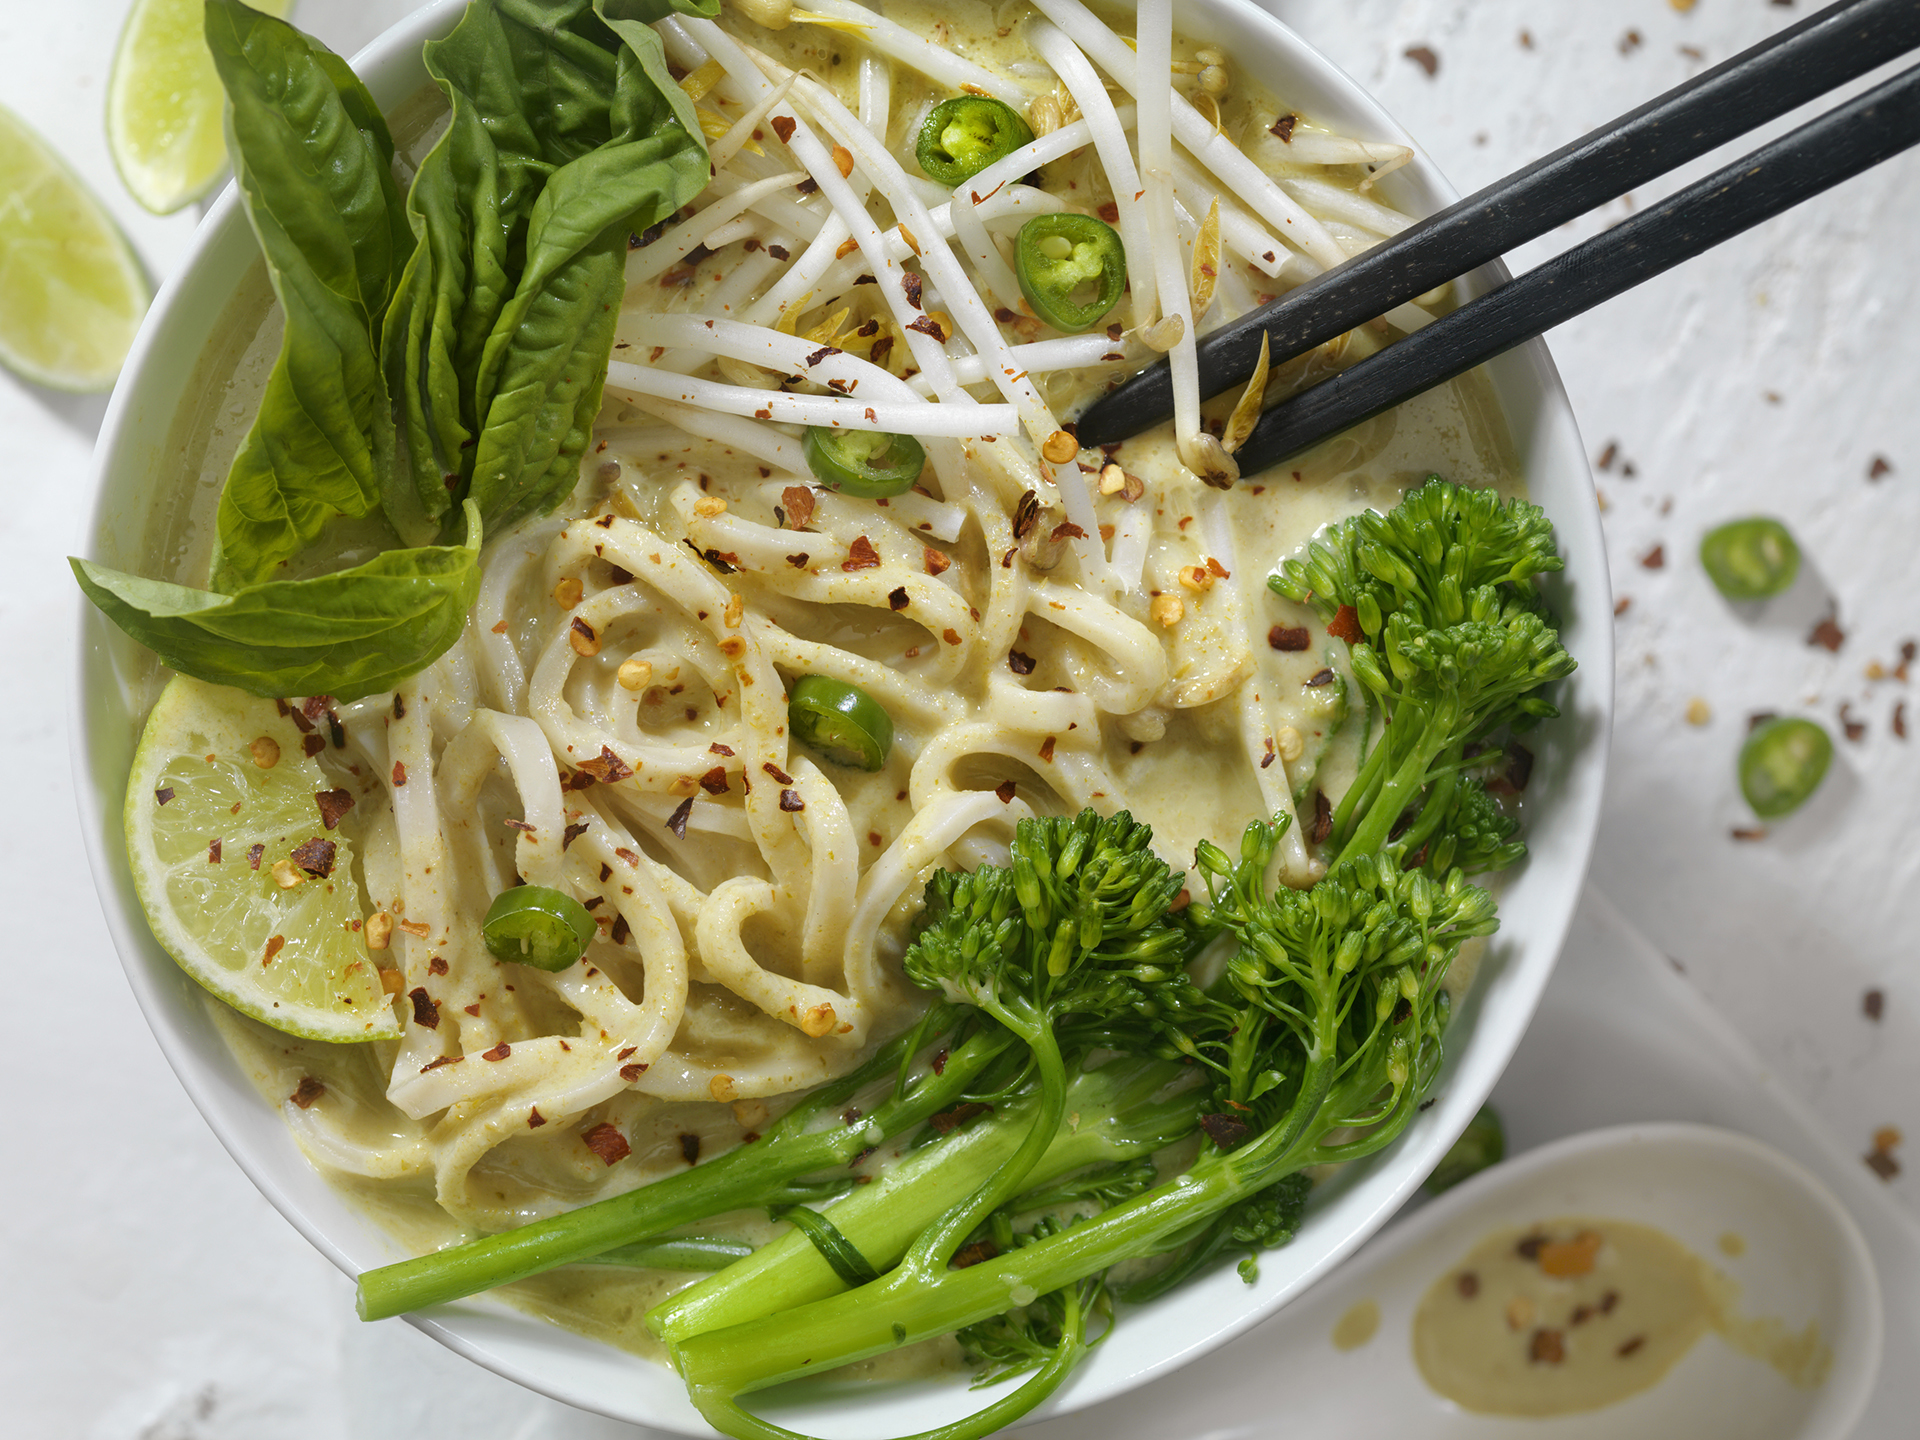 Thai Green Curry Noodle Soup with Broccoli, Bean Sprouts, Fresh Basil, Lime and Chili Flakes